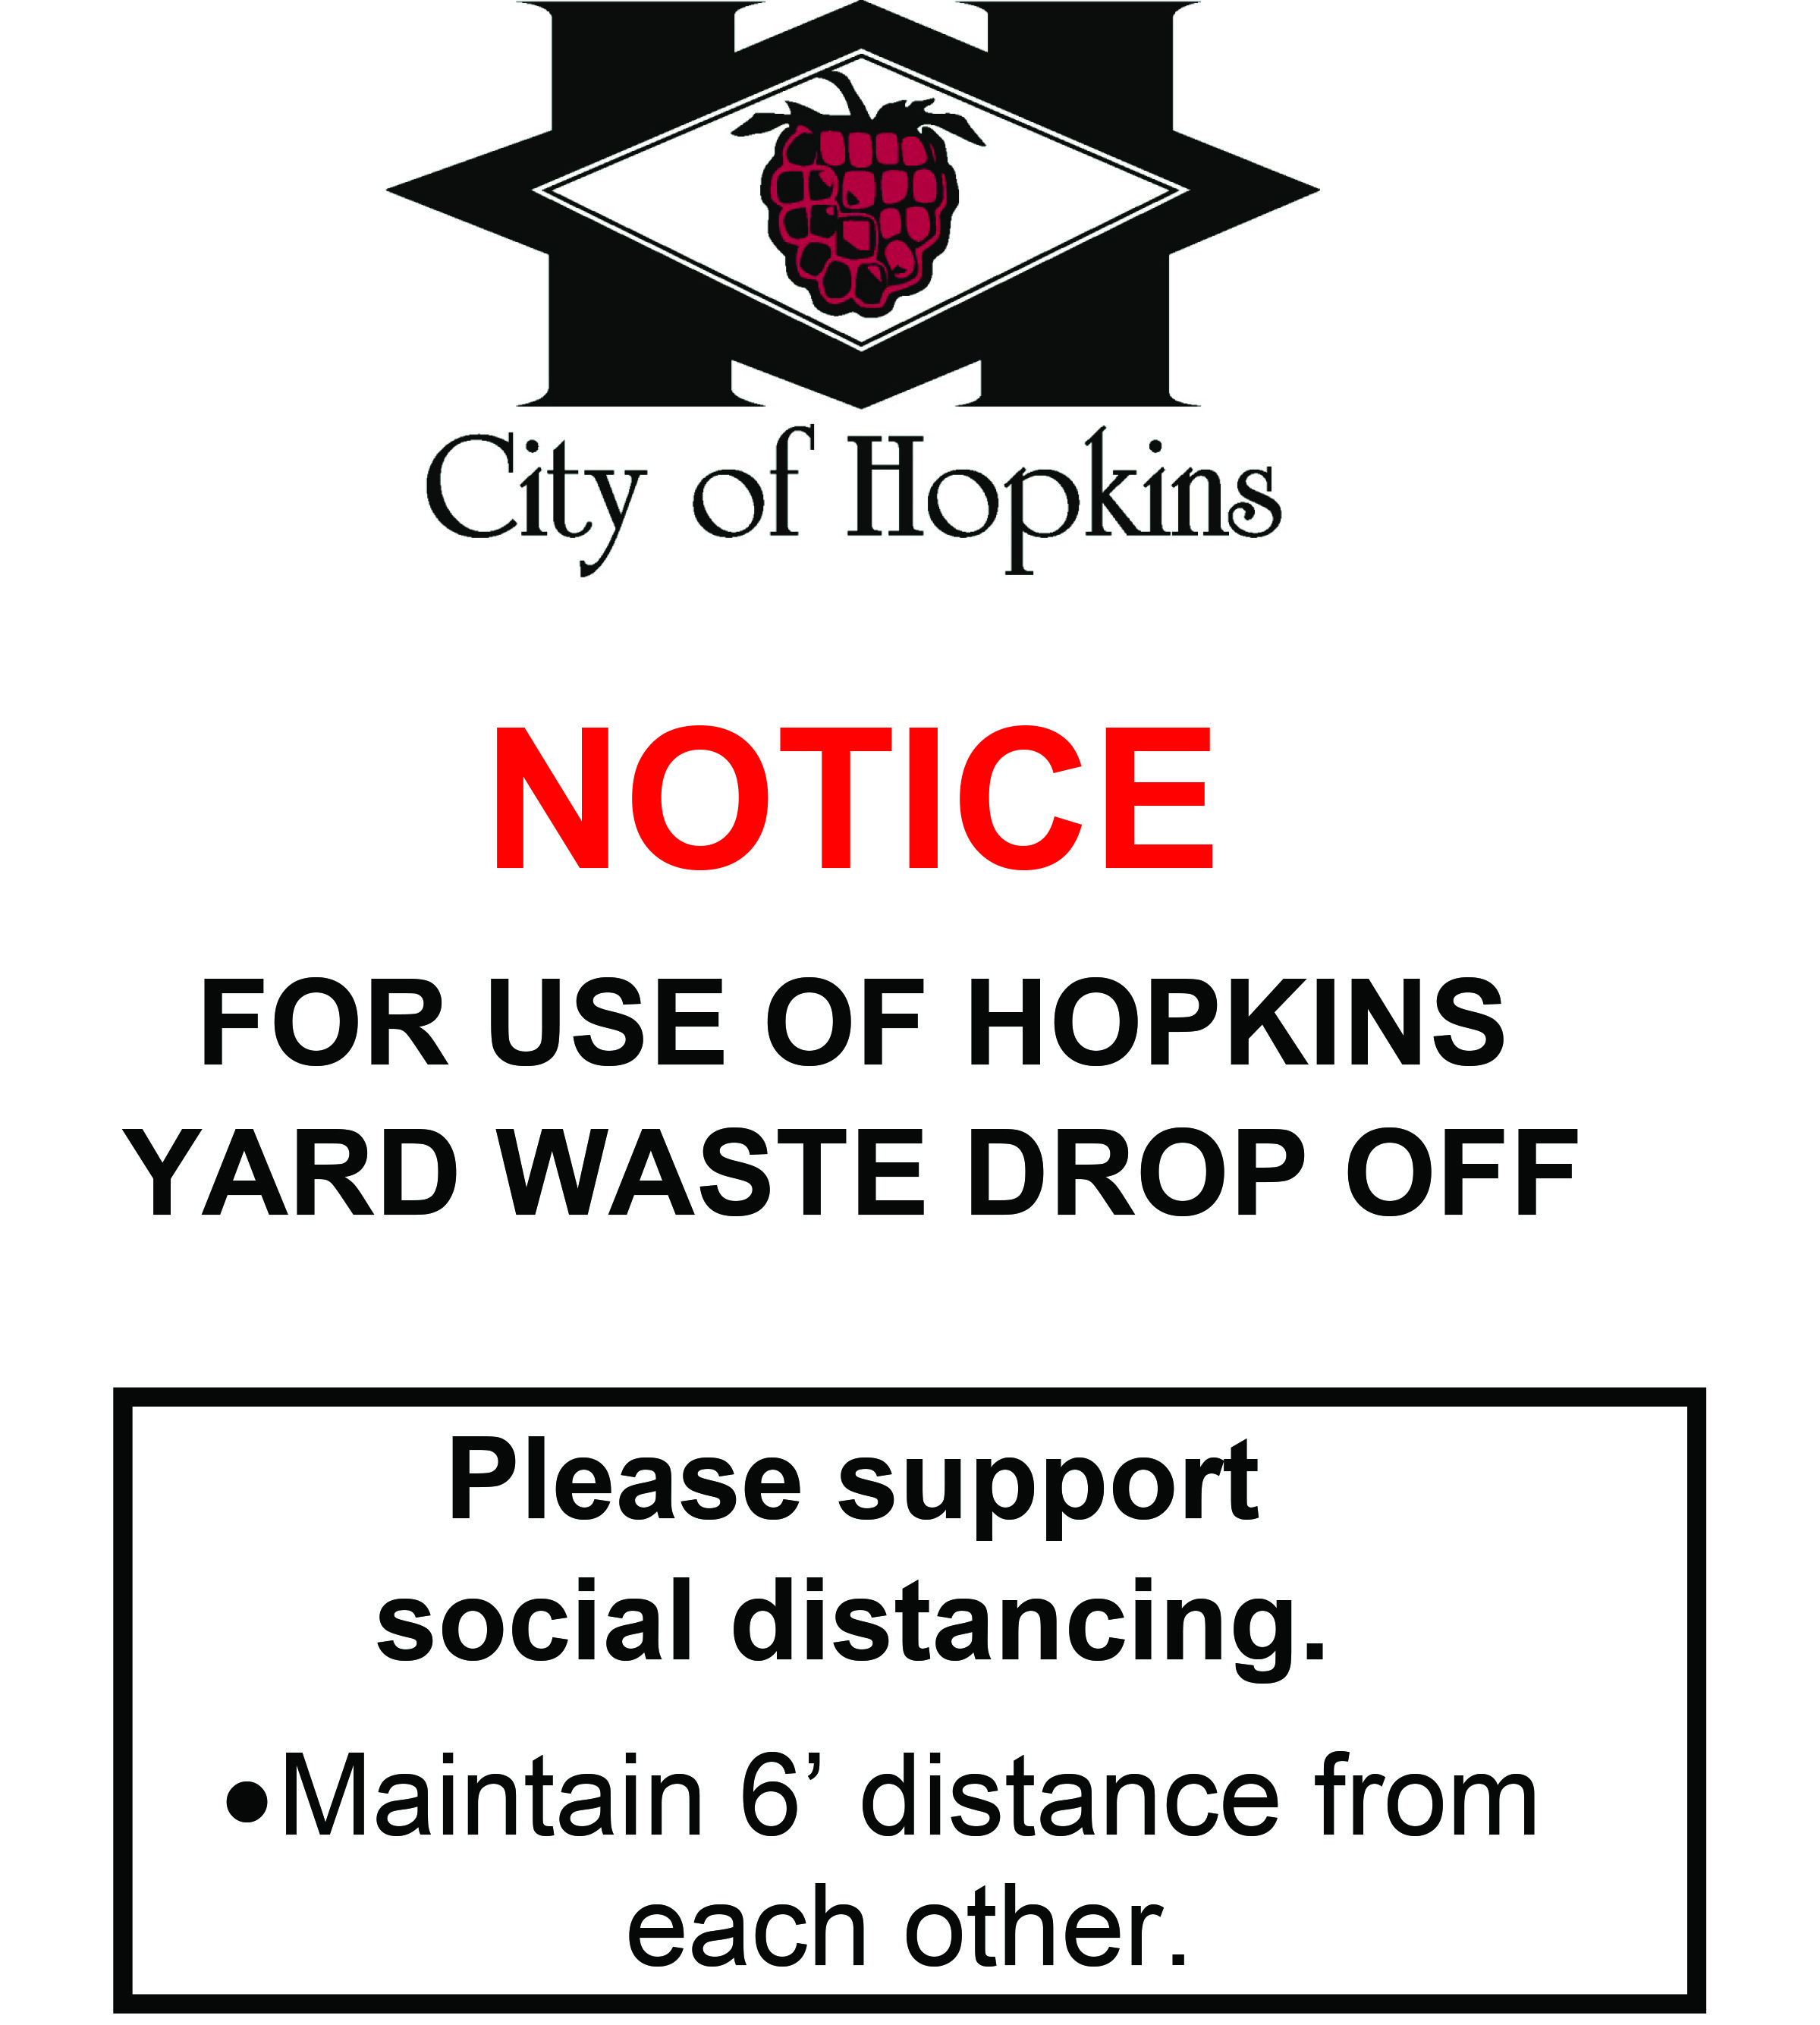 Sign for Yard Waste Drop-Off Site